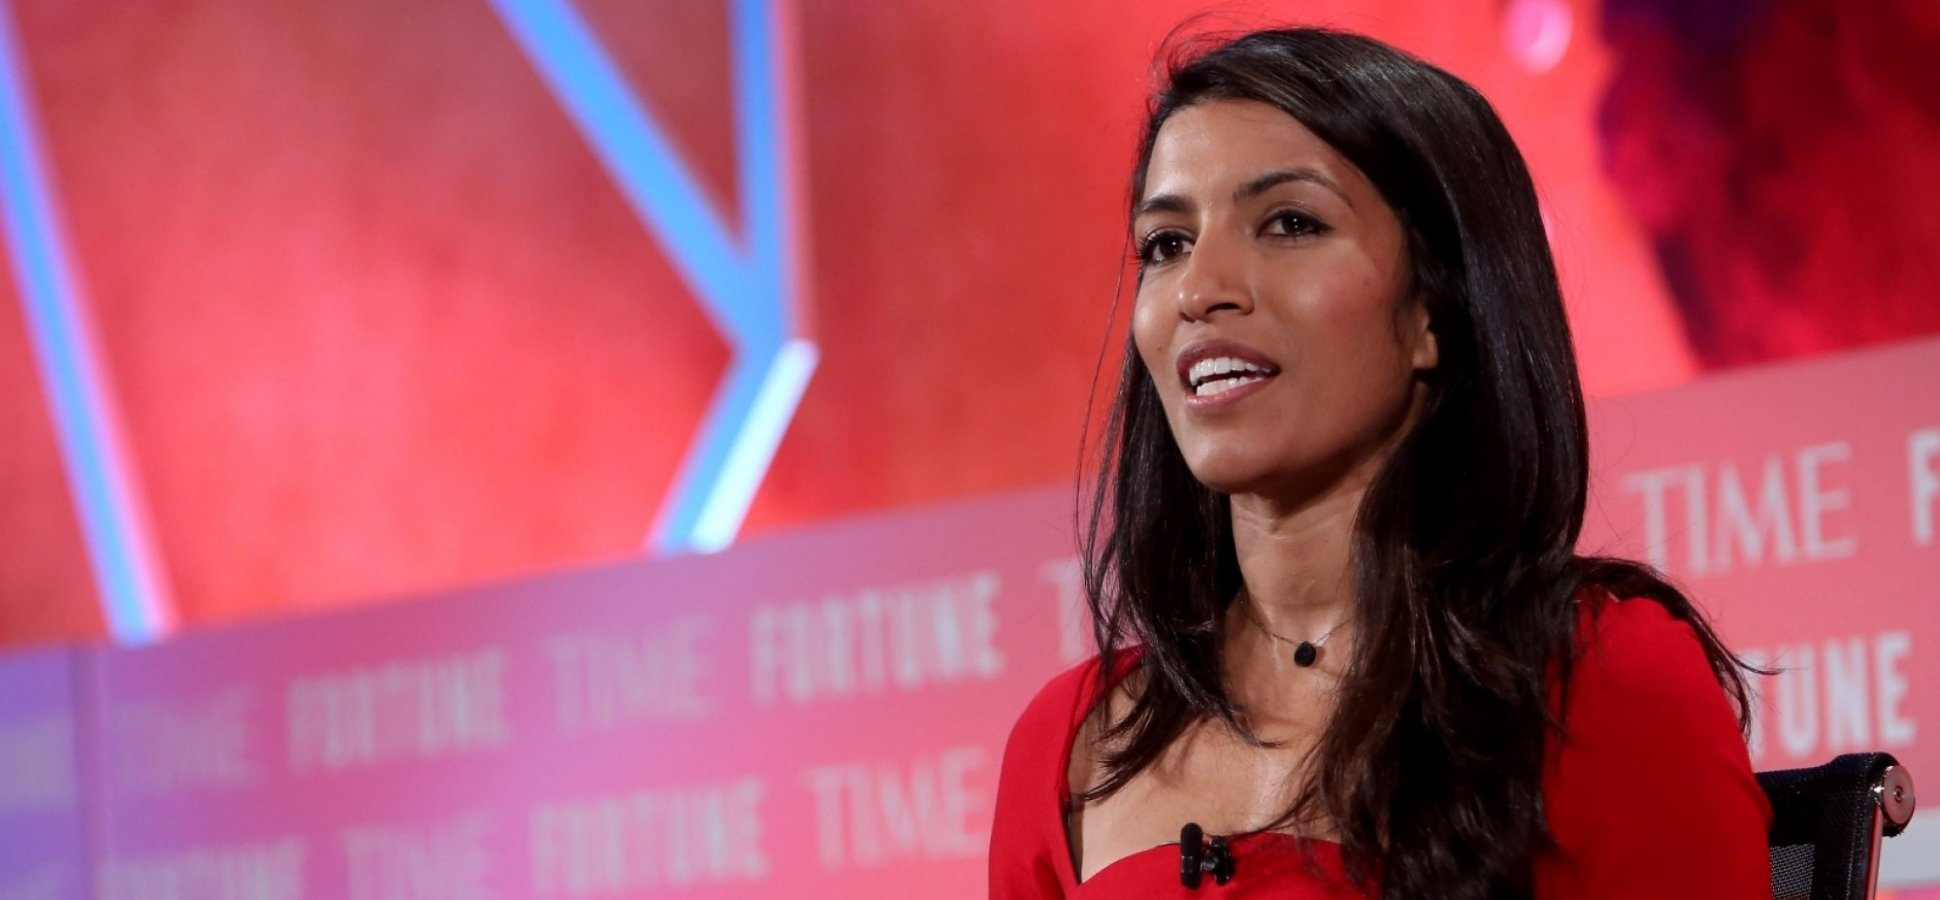 Social Entrepreneur Leila Janah, Founder of Samasource and LXMI Is Dead at 37